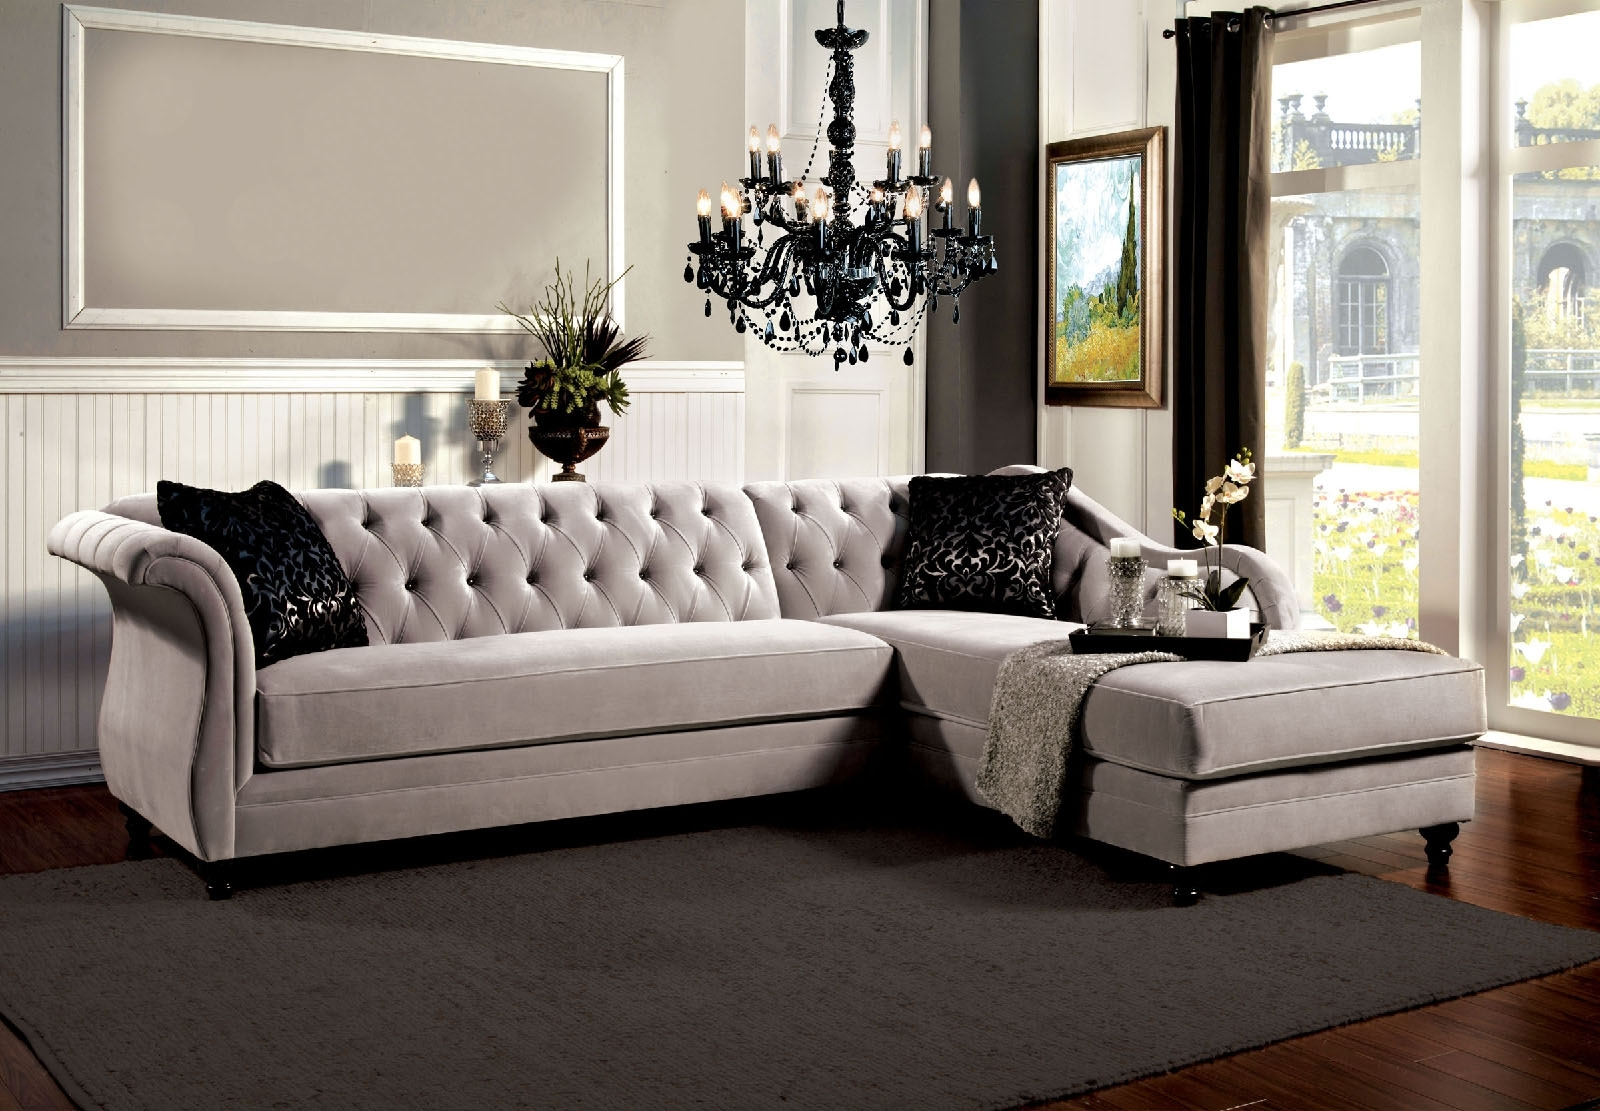 Grey Vintage Tufted Sectional Sofa With Vintage Sectional Sofas (Image 2 of 10)